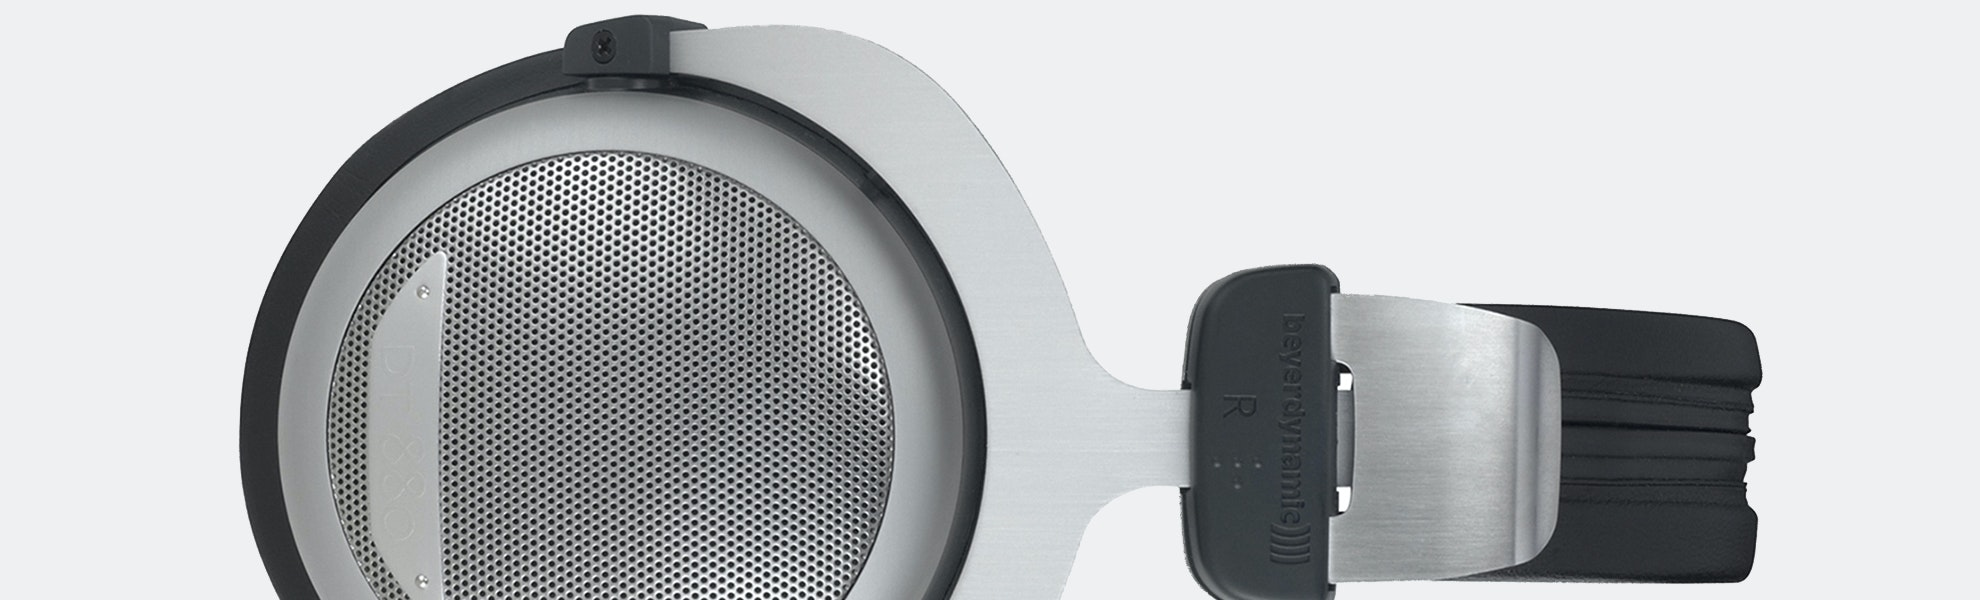 Beyerdynamic DT880 Premium 250-Ohm Headphones